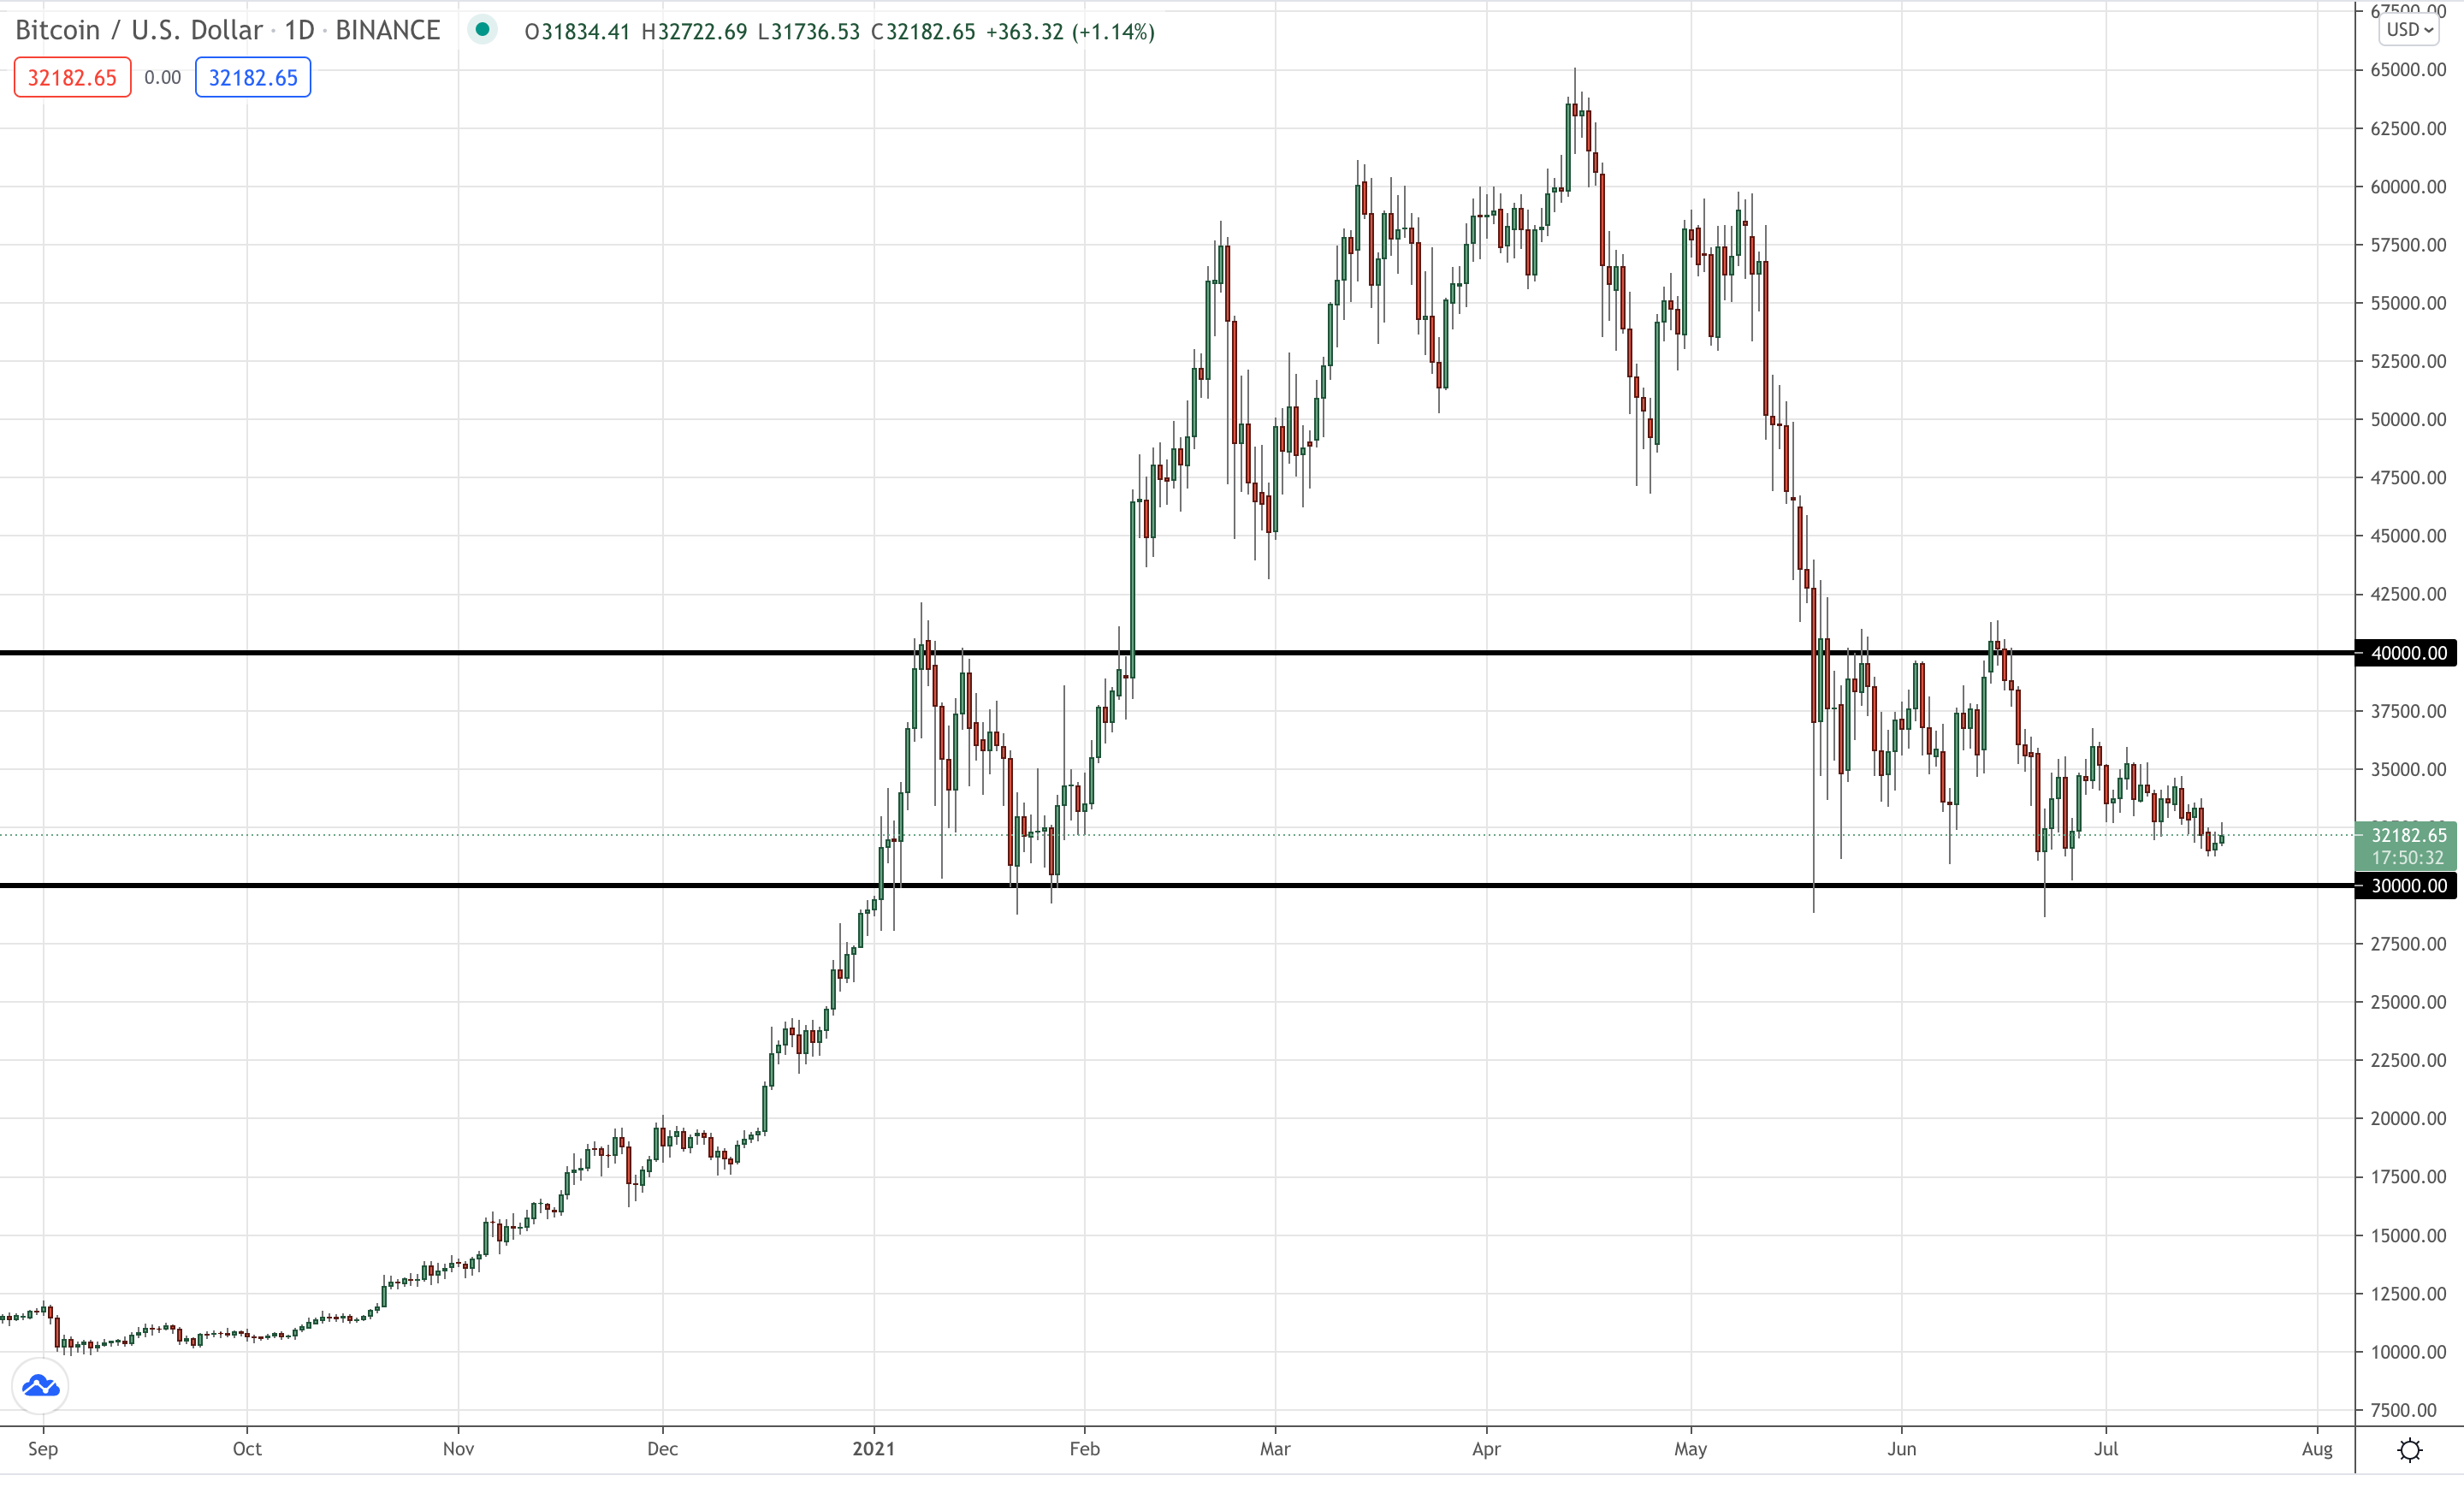 The Bitcoin support levels that matter heading into August 2021 on the Bitcoin daily chart.